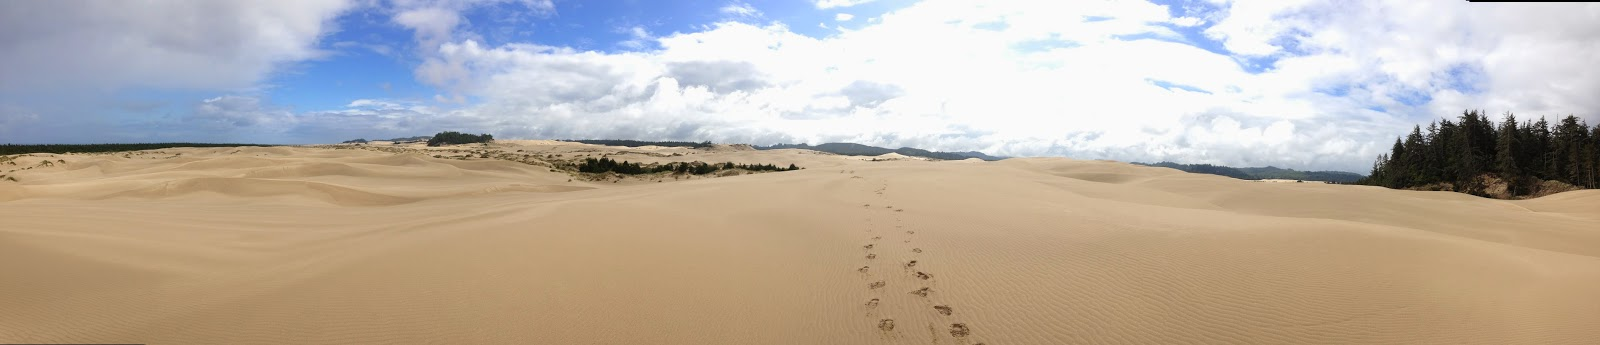 panorama oregon dunes